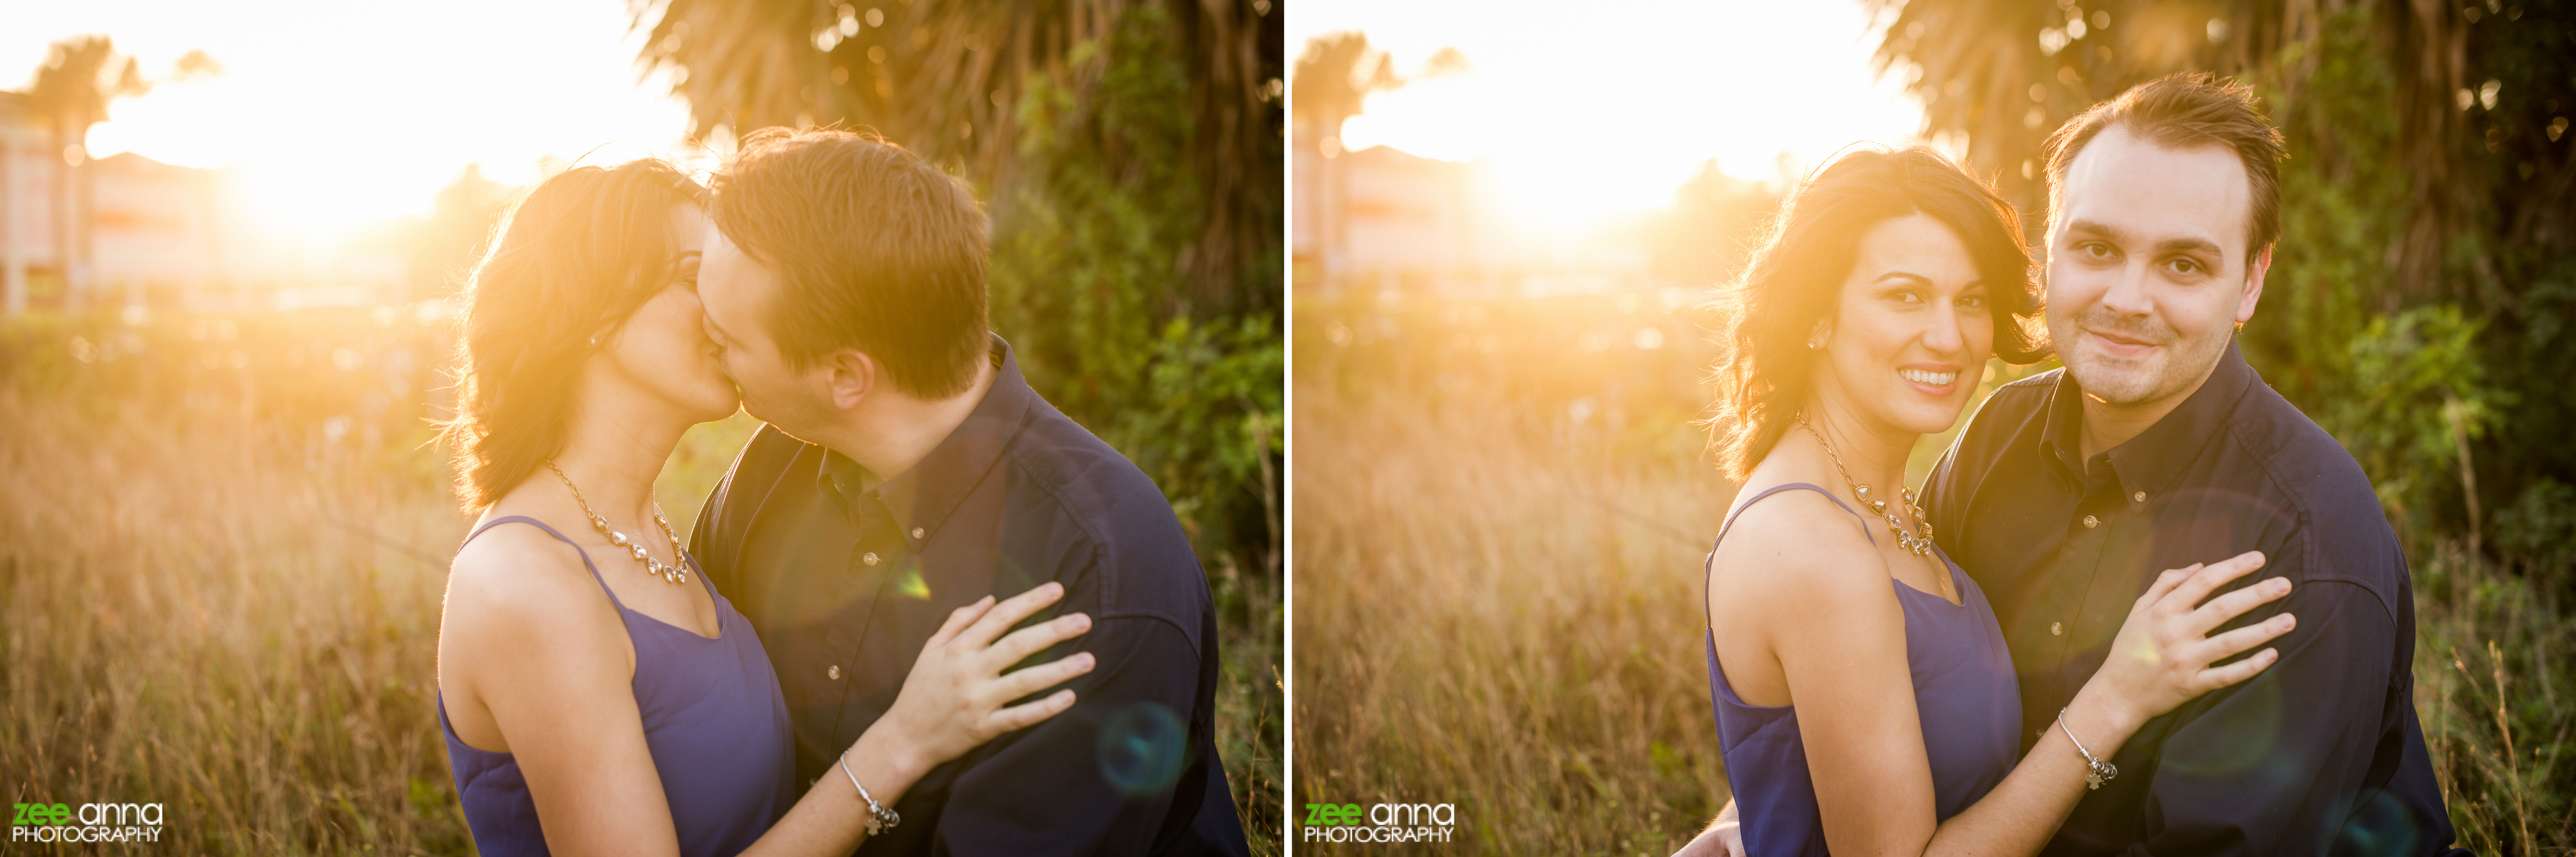 Jason+Tabitha-Engagement_01122014_121-121